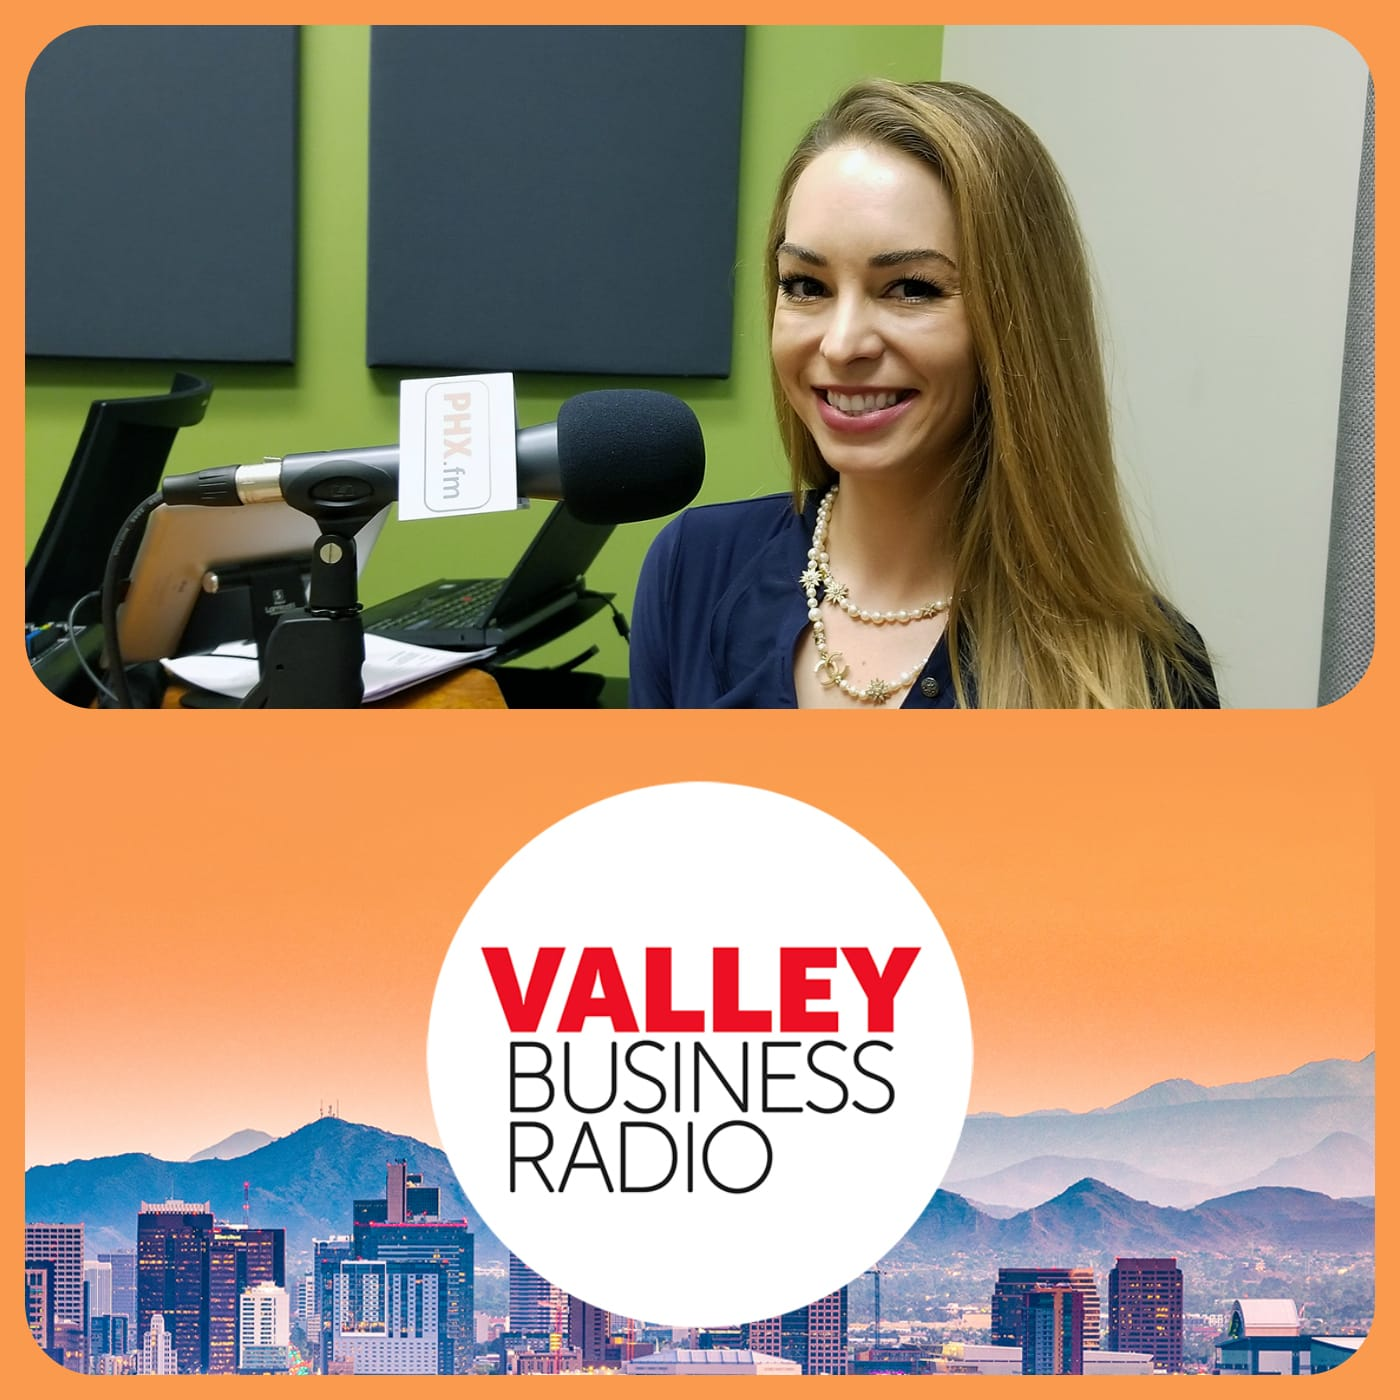 Artwork for podcast Valley Business Radio